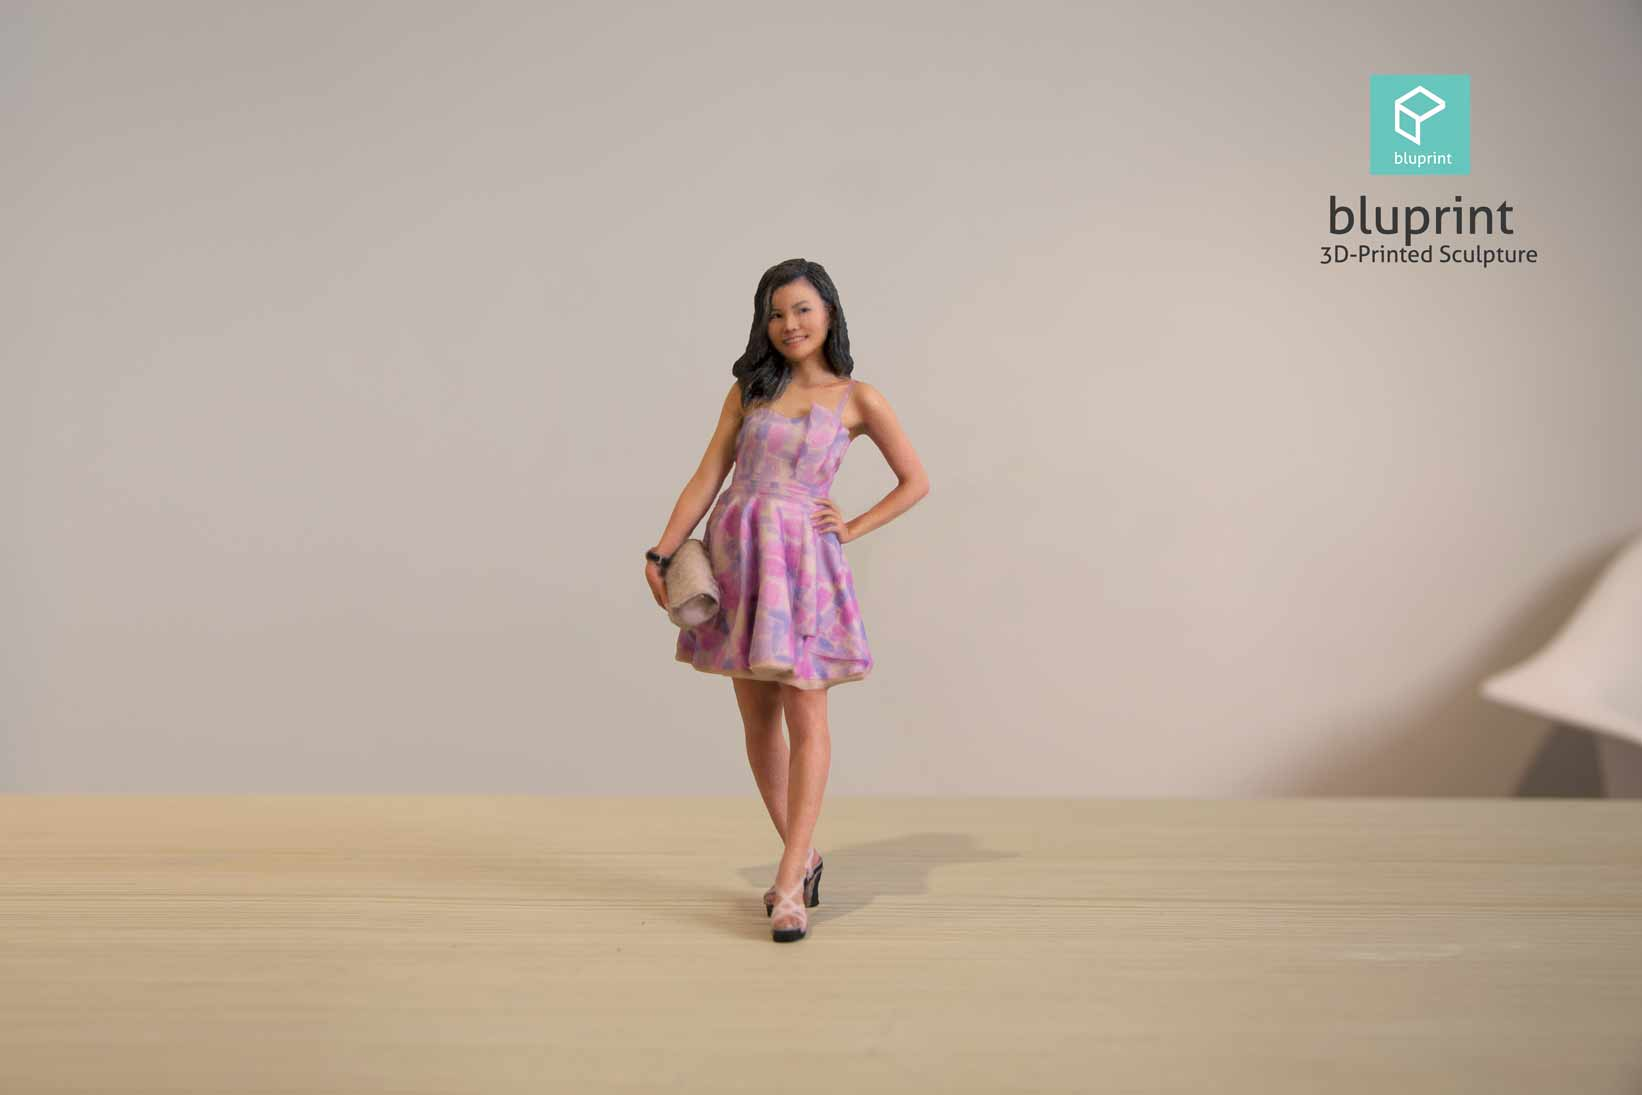 Bluprint 3D Figure Girl with Pink Dress